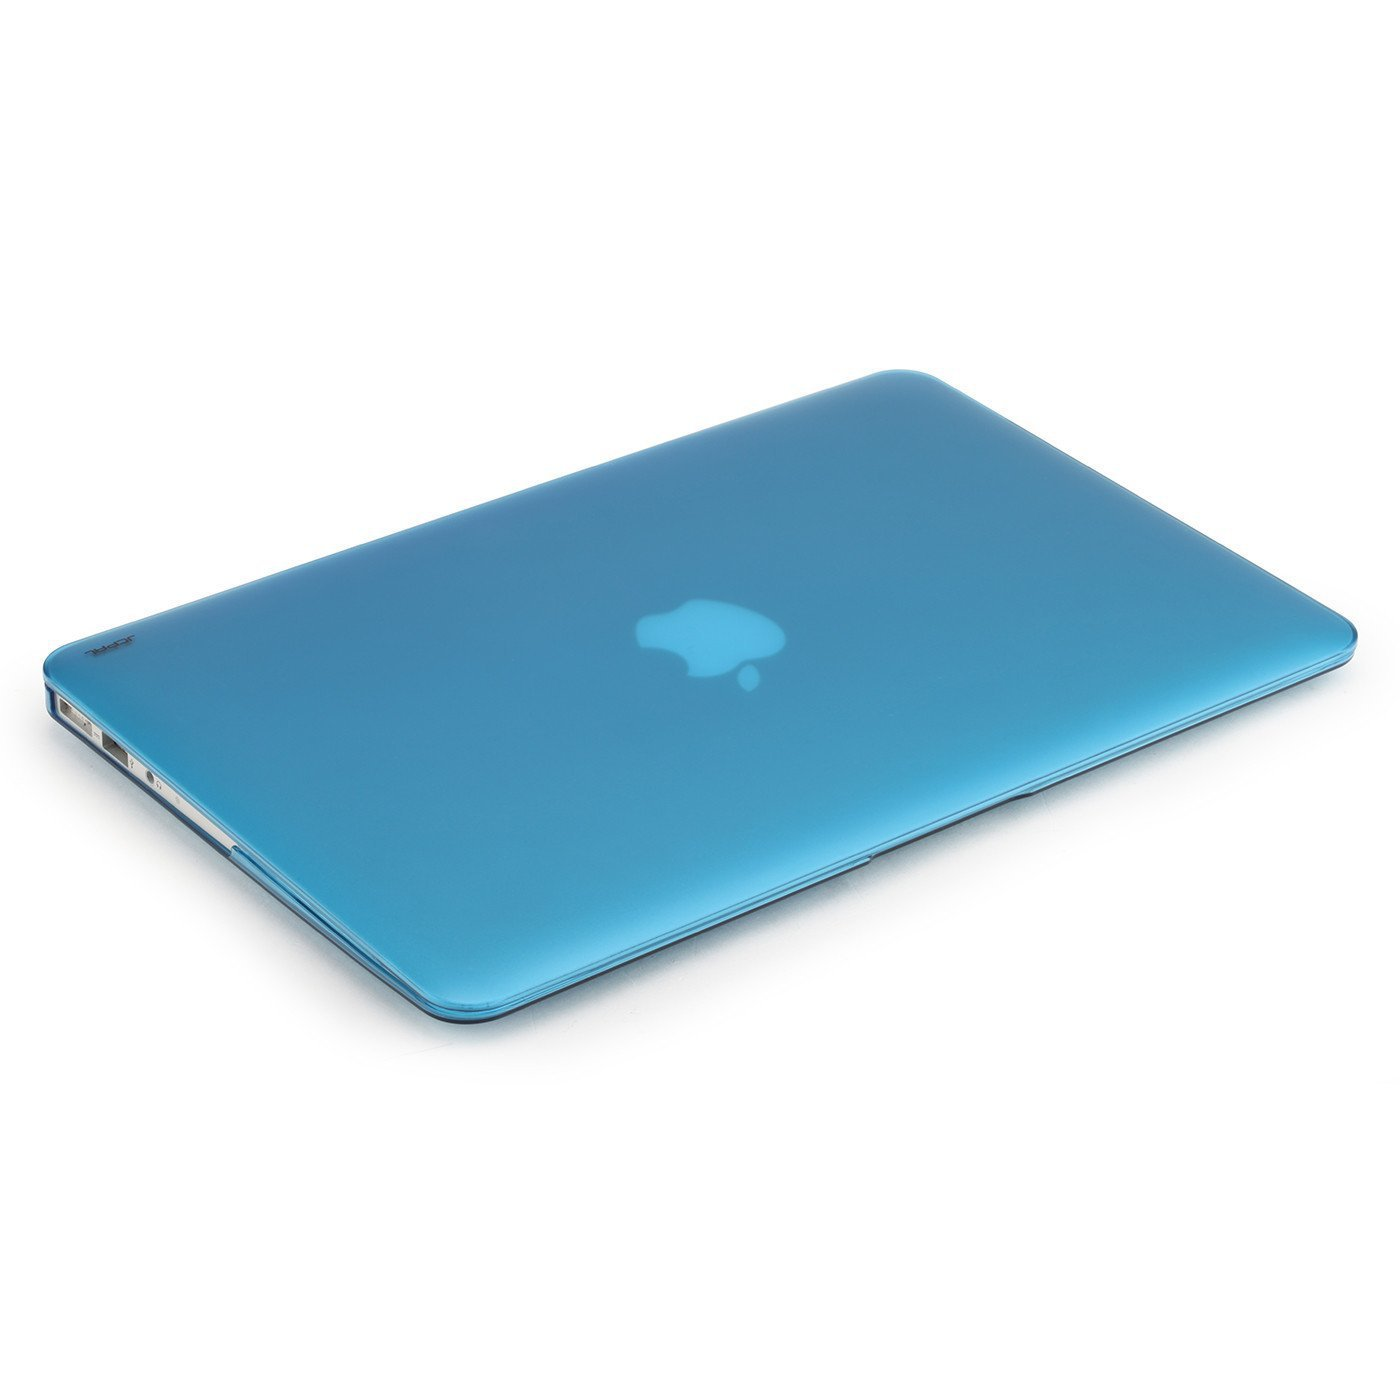 on sale f53f0 961b9 MacGuard Ultra-thin Protective Case for MacBook Air